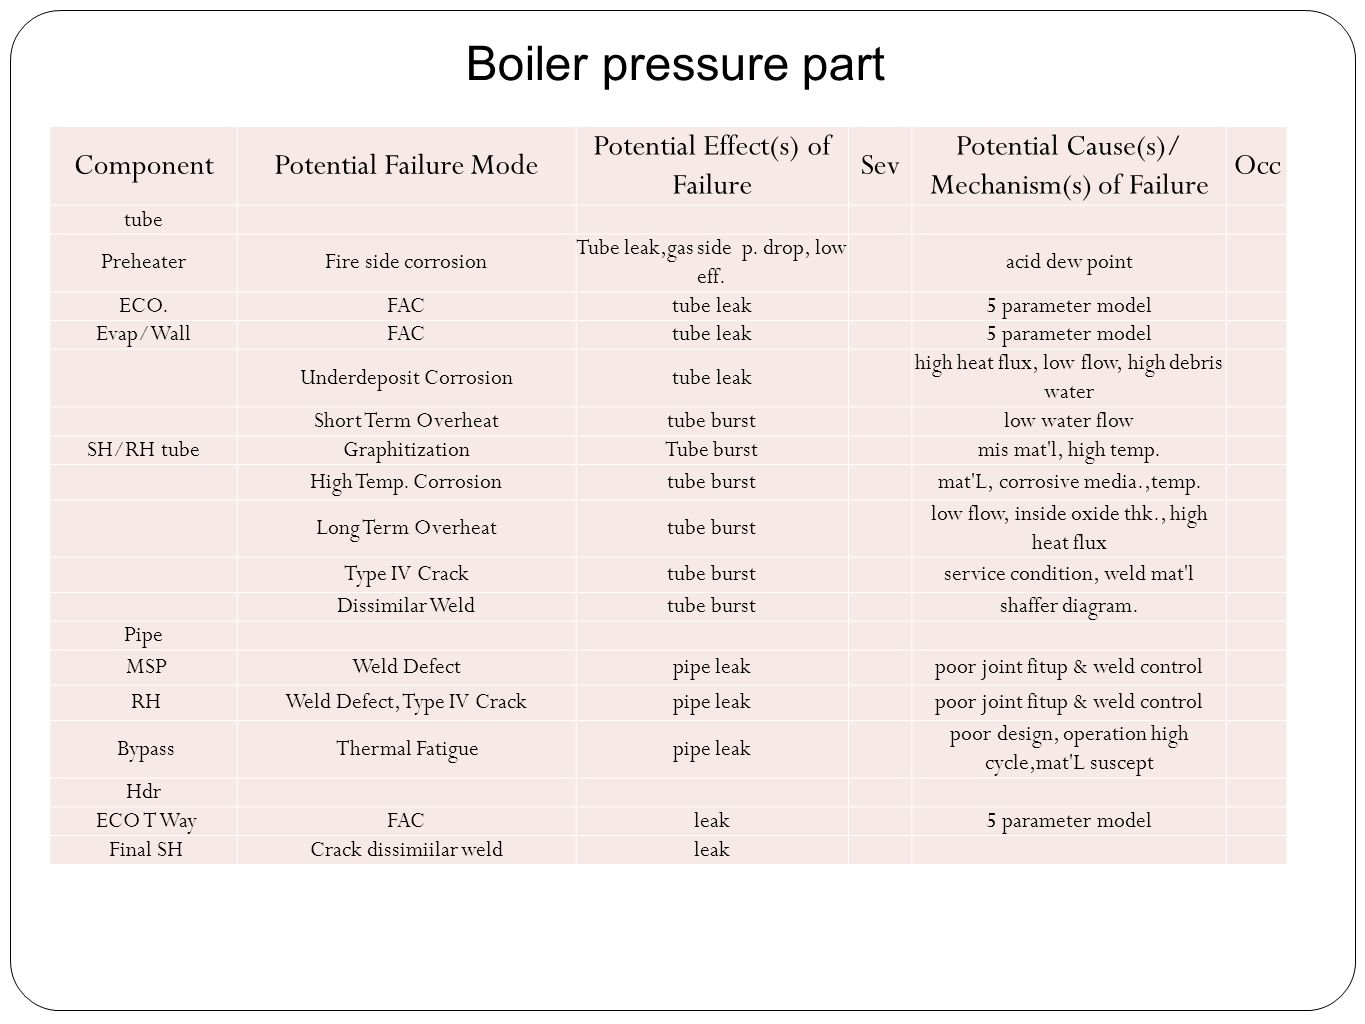 Boiler pressure part ComponentPotential Failure Mode Potential Effect(s) of Failure Sev Potential Cause(s)/ Mechanism(s) of Failure Occ tube Preheater